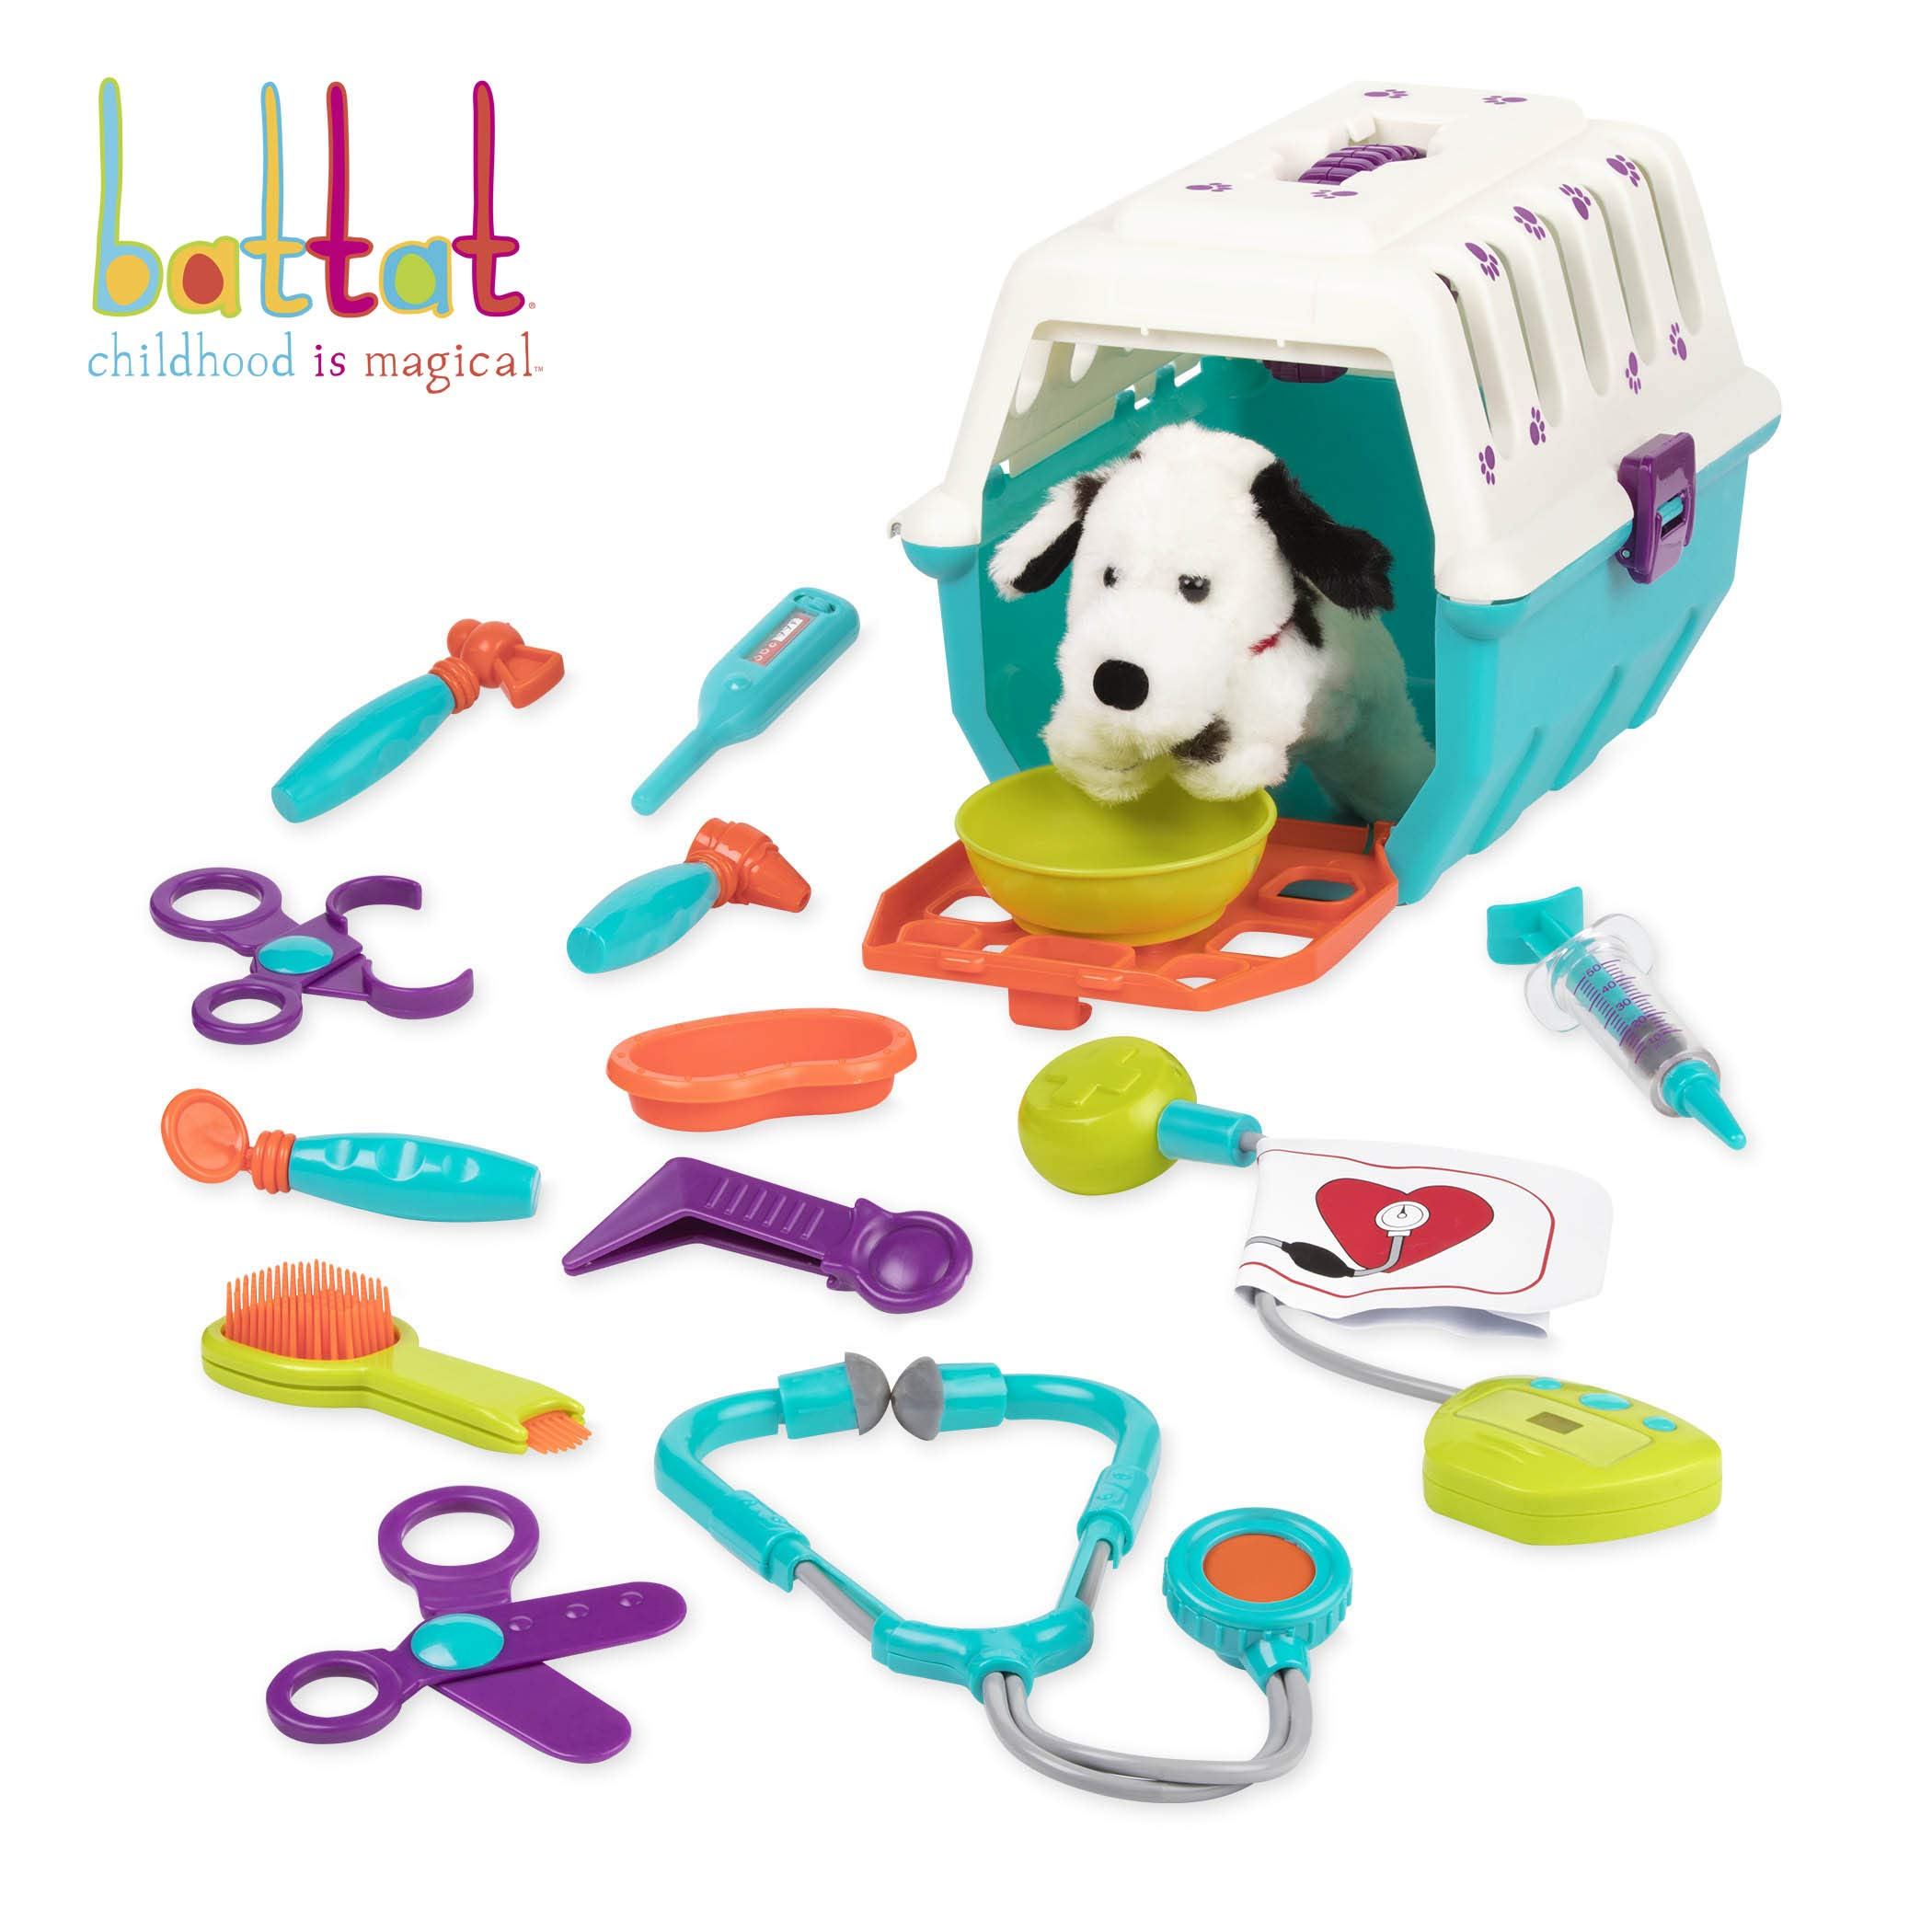 Battat - Dalmatian Vet Kit - Interactive Vet Clinic and Cage Pretend Play for Kids (15 pieces) by Battat